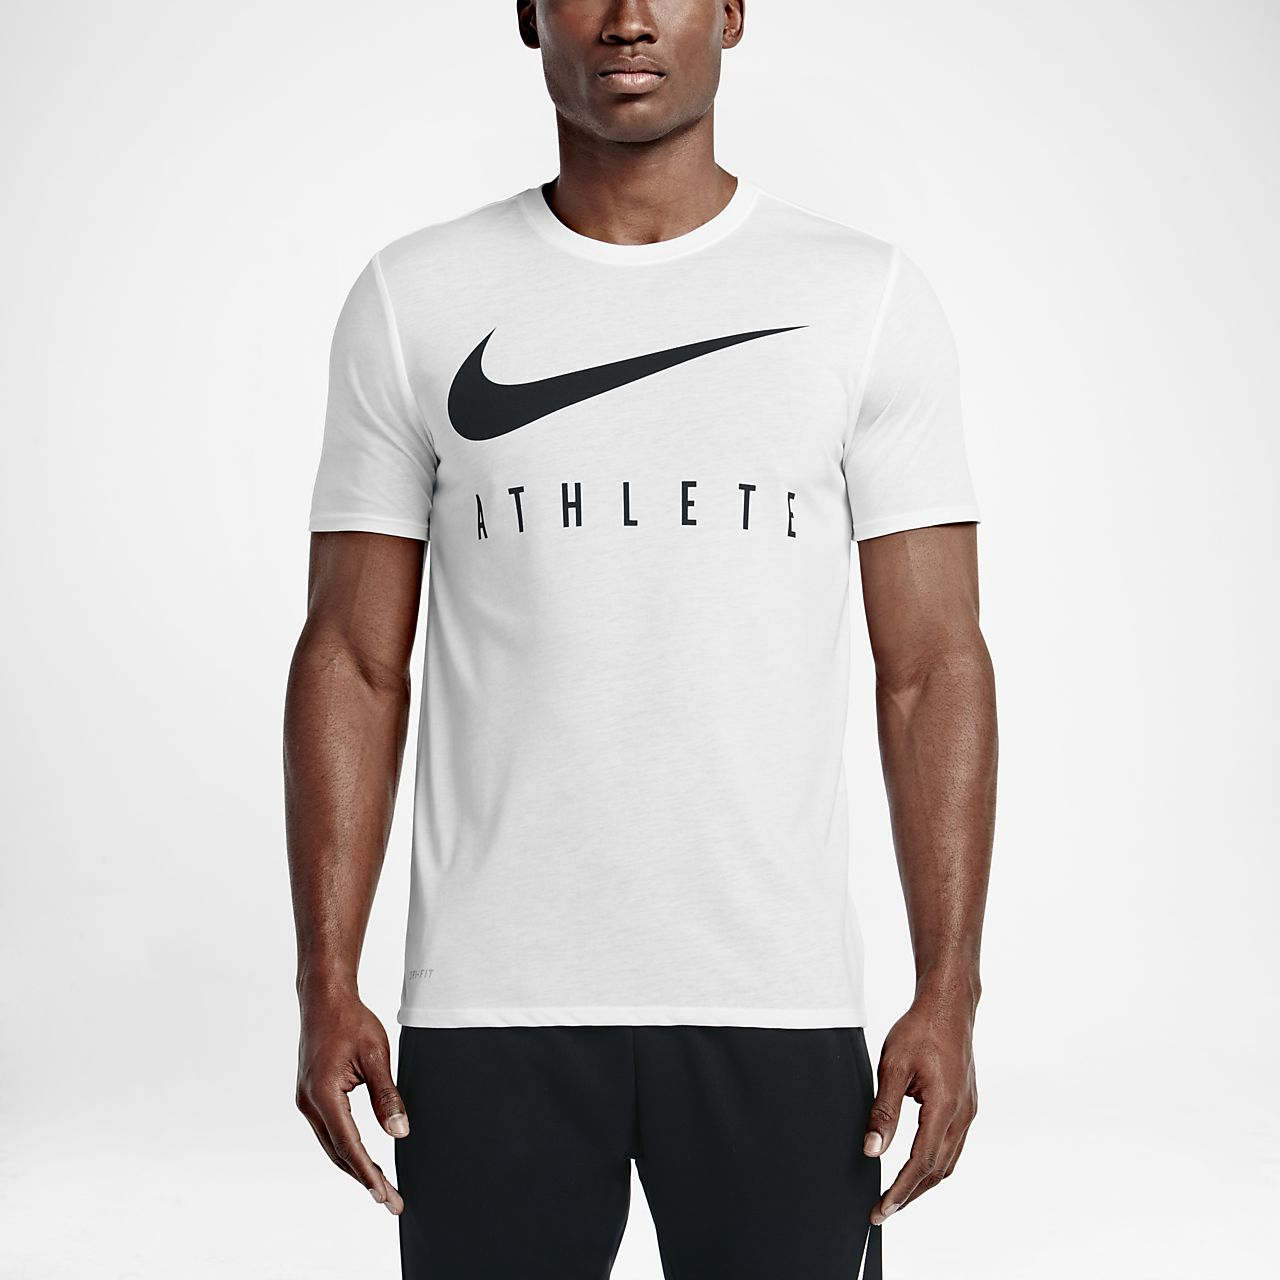 Fashion style Nike white t shirt for girls